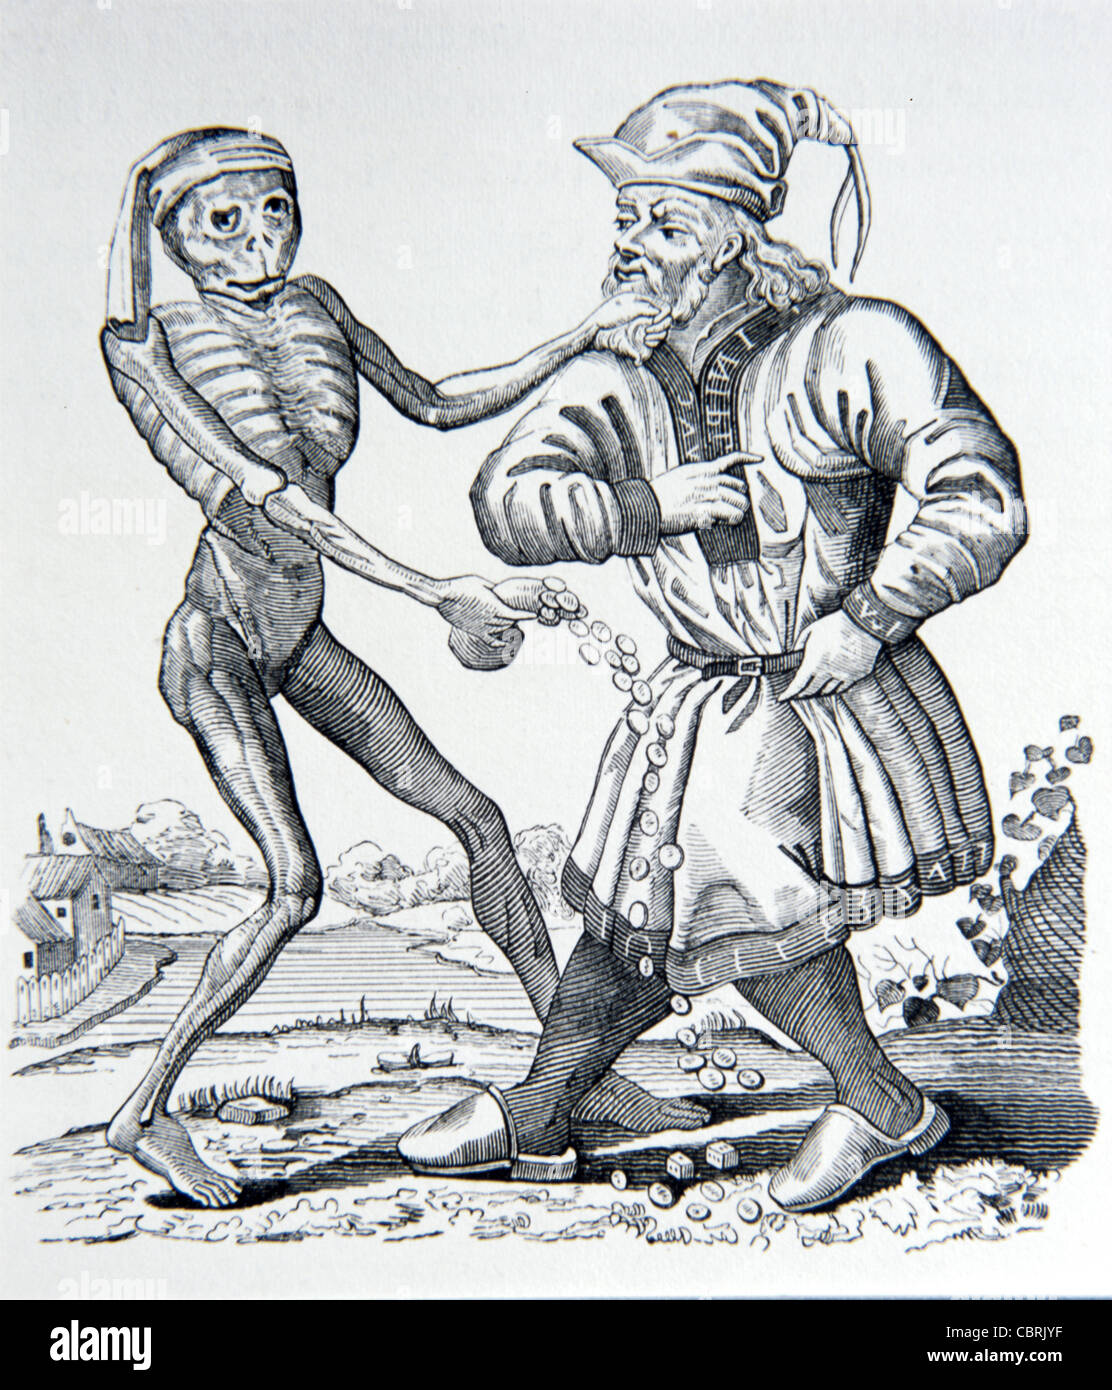 The Jew with Money or Moneylender and Death, the Dance of Death, Engraving by Matthew or Matthaus Merian, 1641. Stock Photo